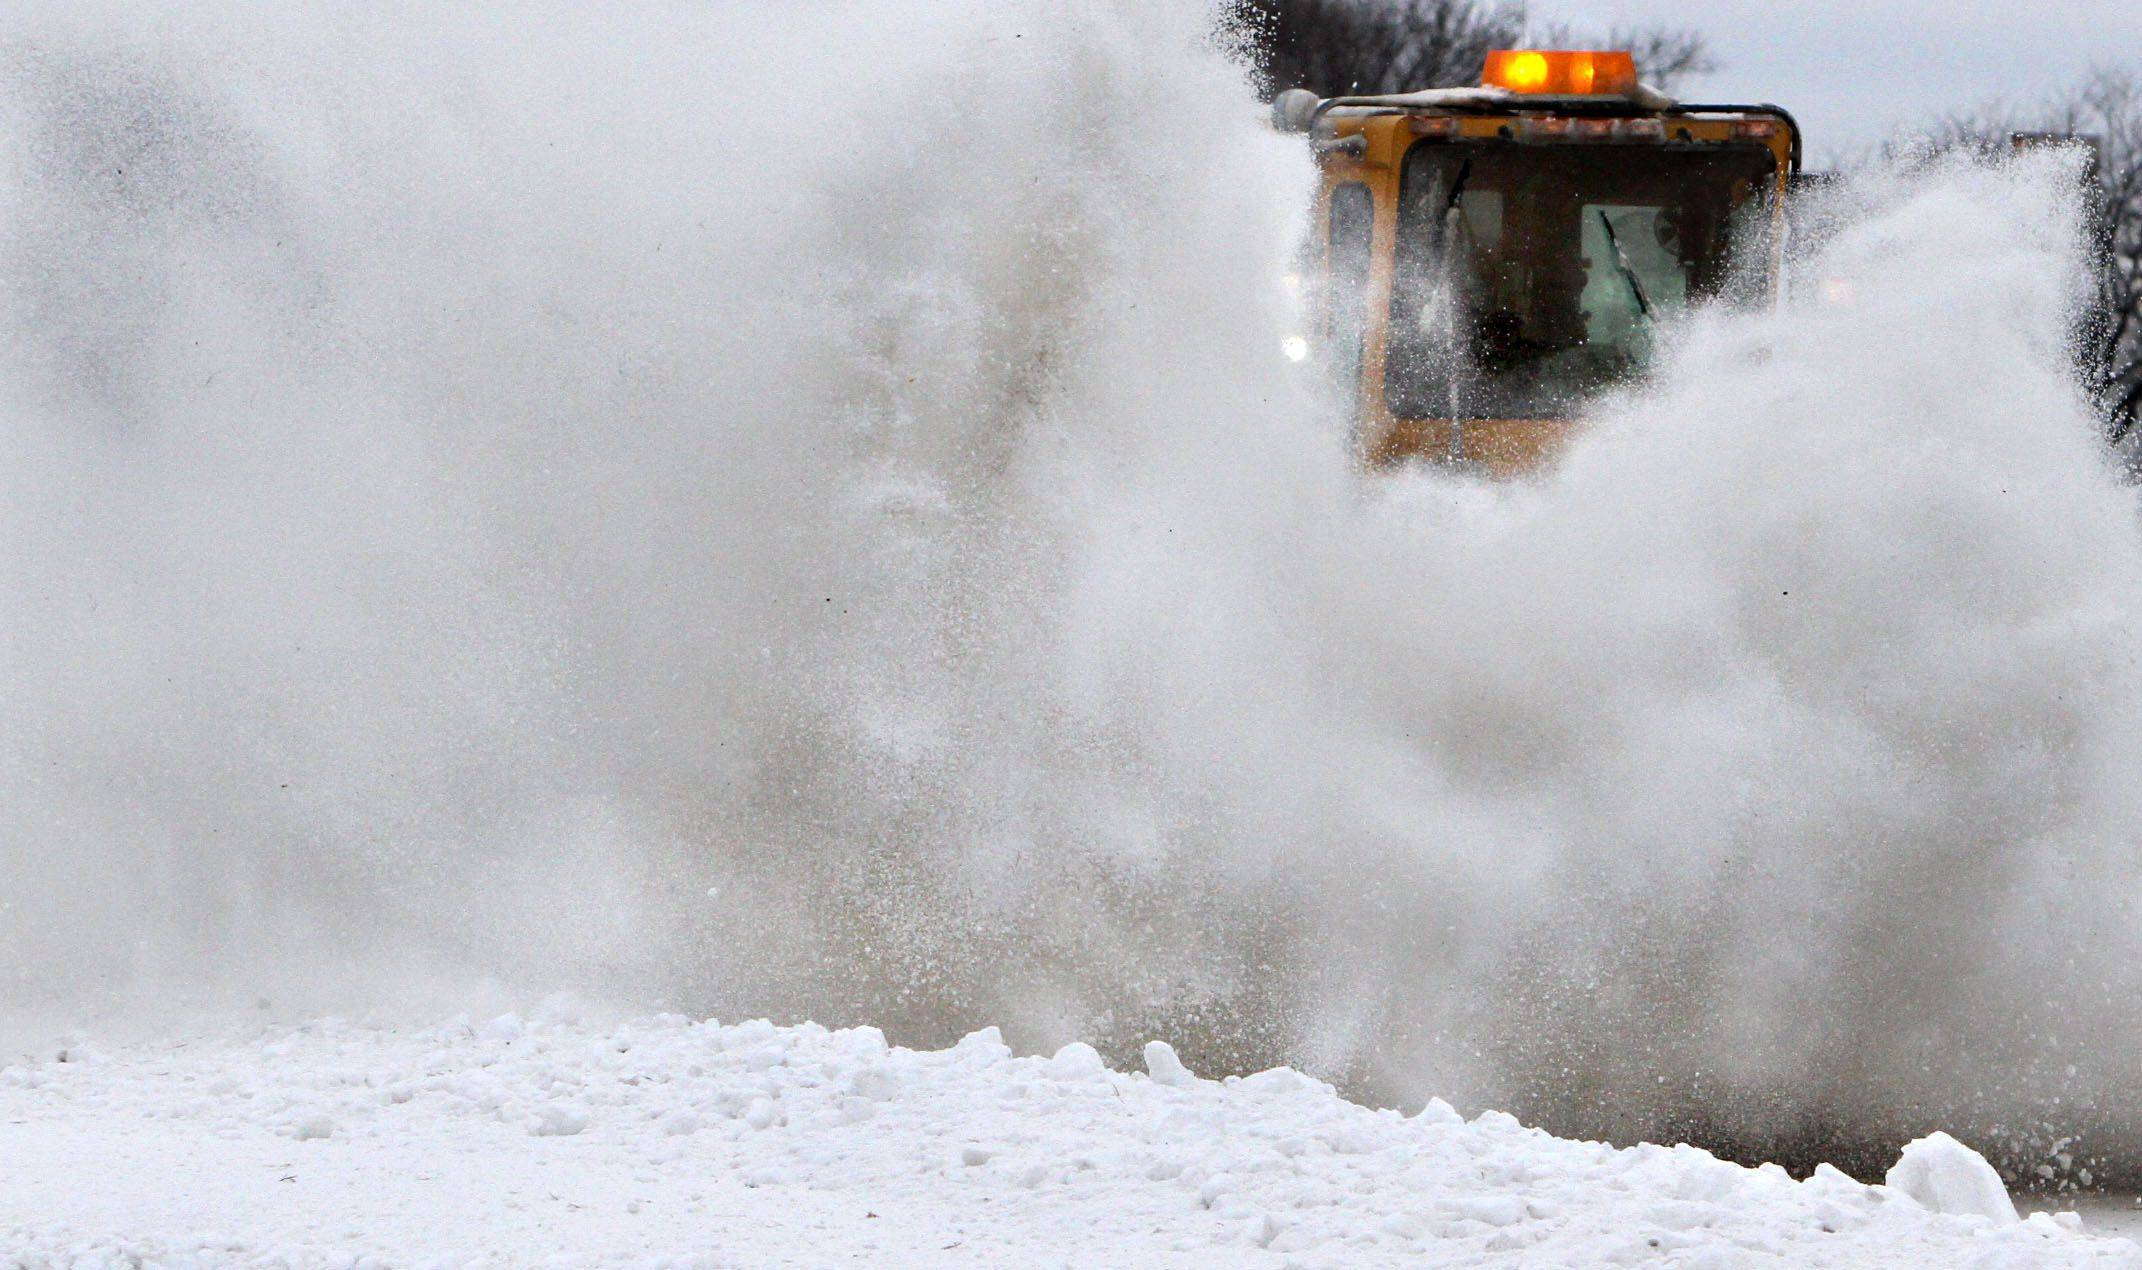 A large snowplow removes snow from a runway at Chicago Executive Airport in Wheeling on Sunday, December 26.